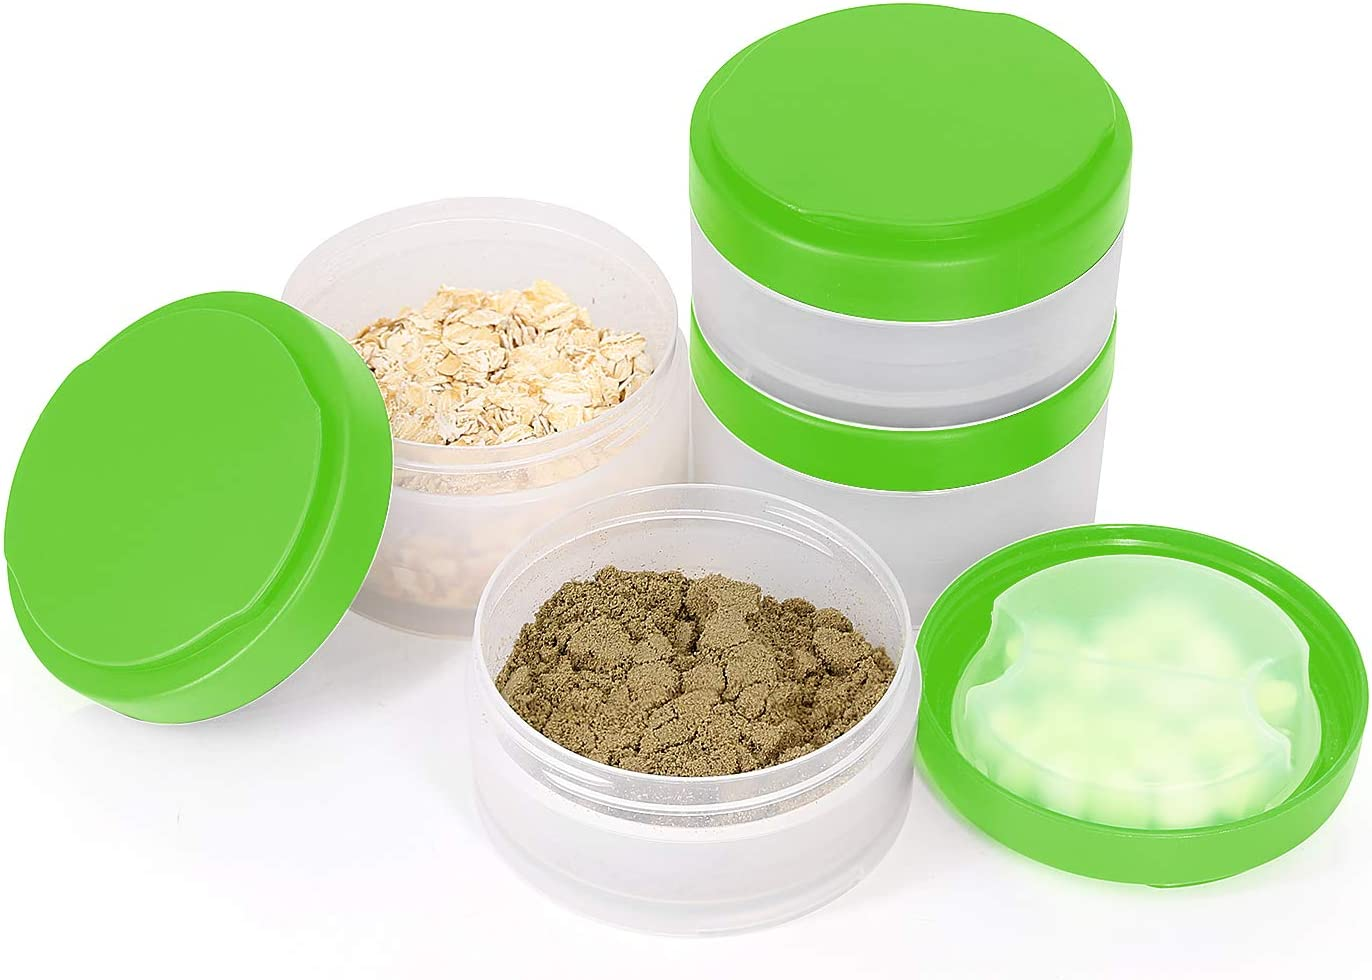 2 PACK Protein Jars with Pill Storage Tray, Replacement Storage Container for 22oz Shaker Blending Shaker Bottle with Twist & Lock on System. Perfect for Powders, Supplements in Sports Activities